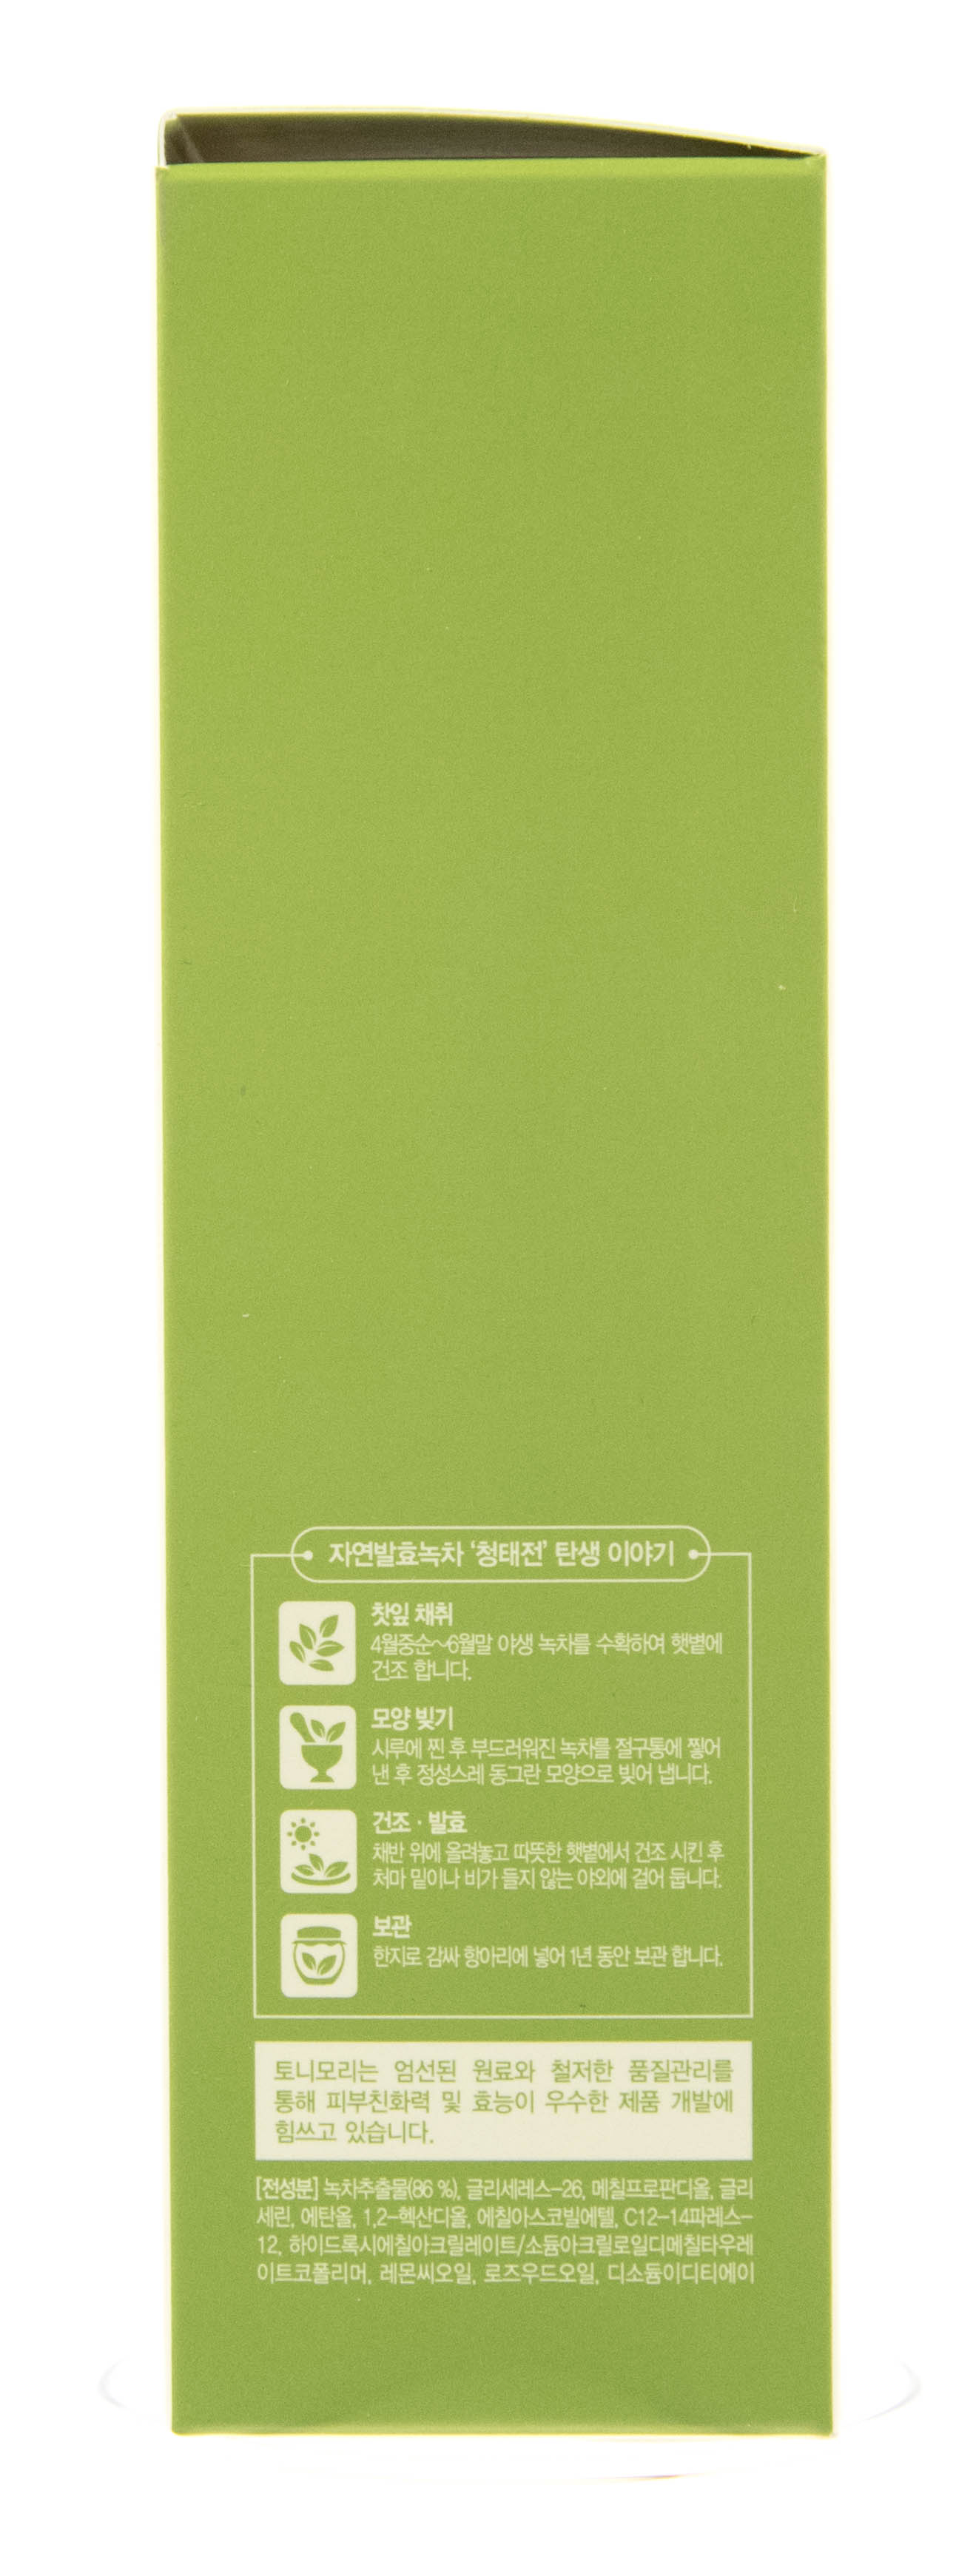 Тони Моли Лосьон с экстрактом зеленого чая 180 мл (Tony Moly, Green Tea) фото 3